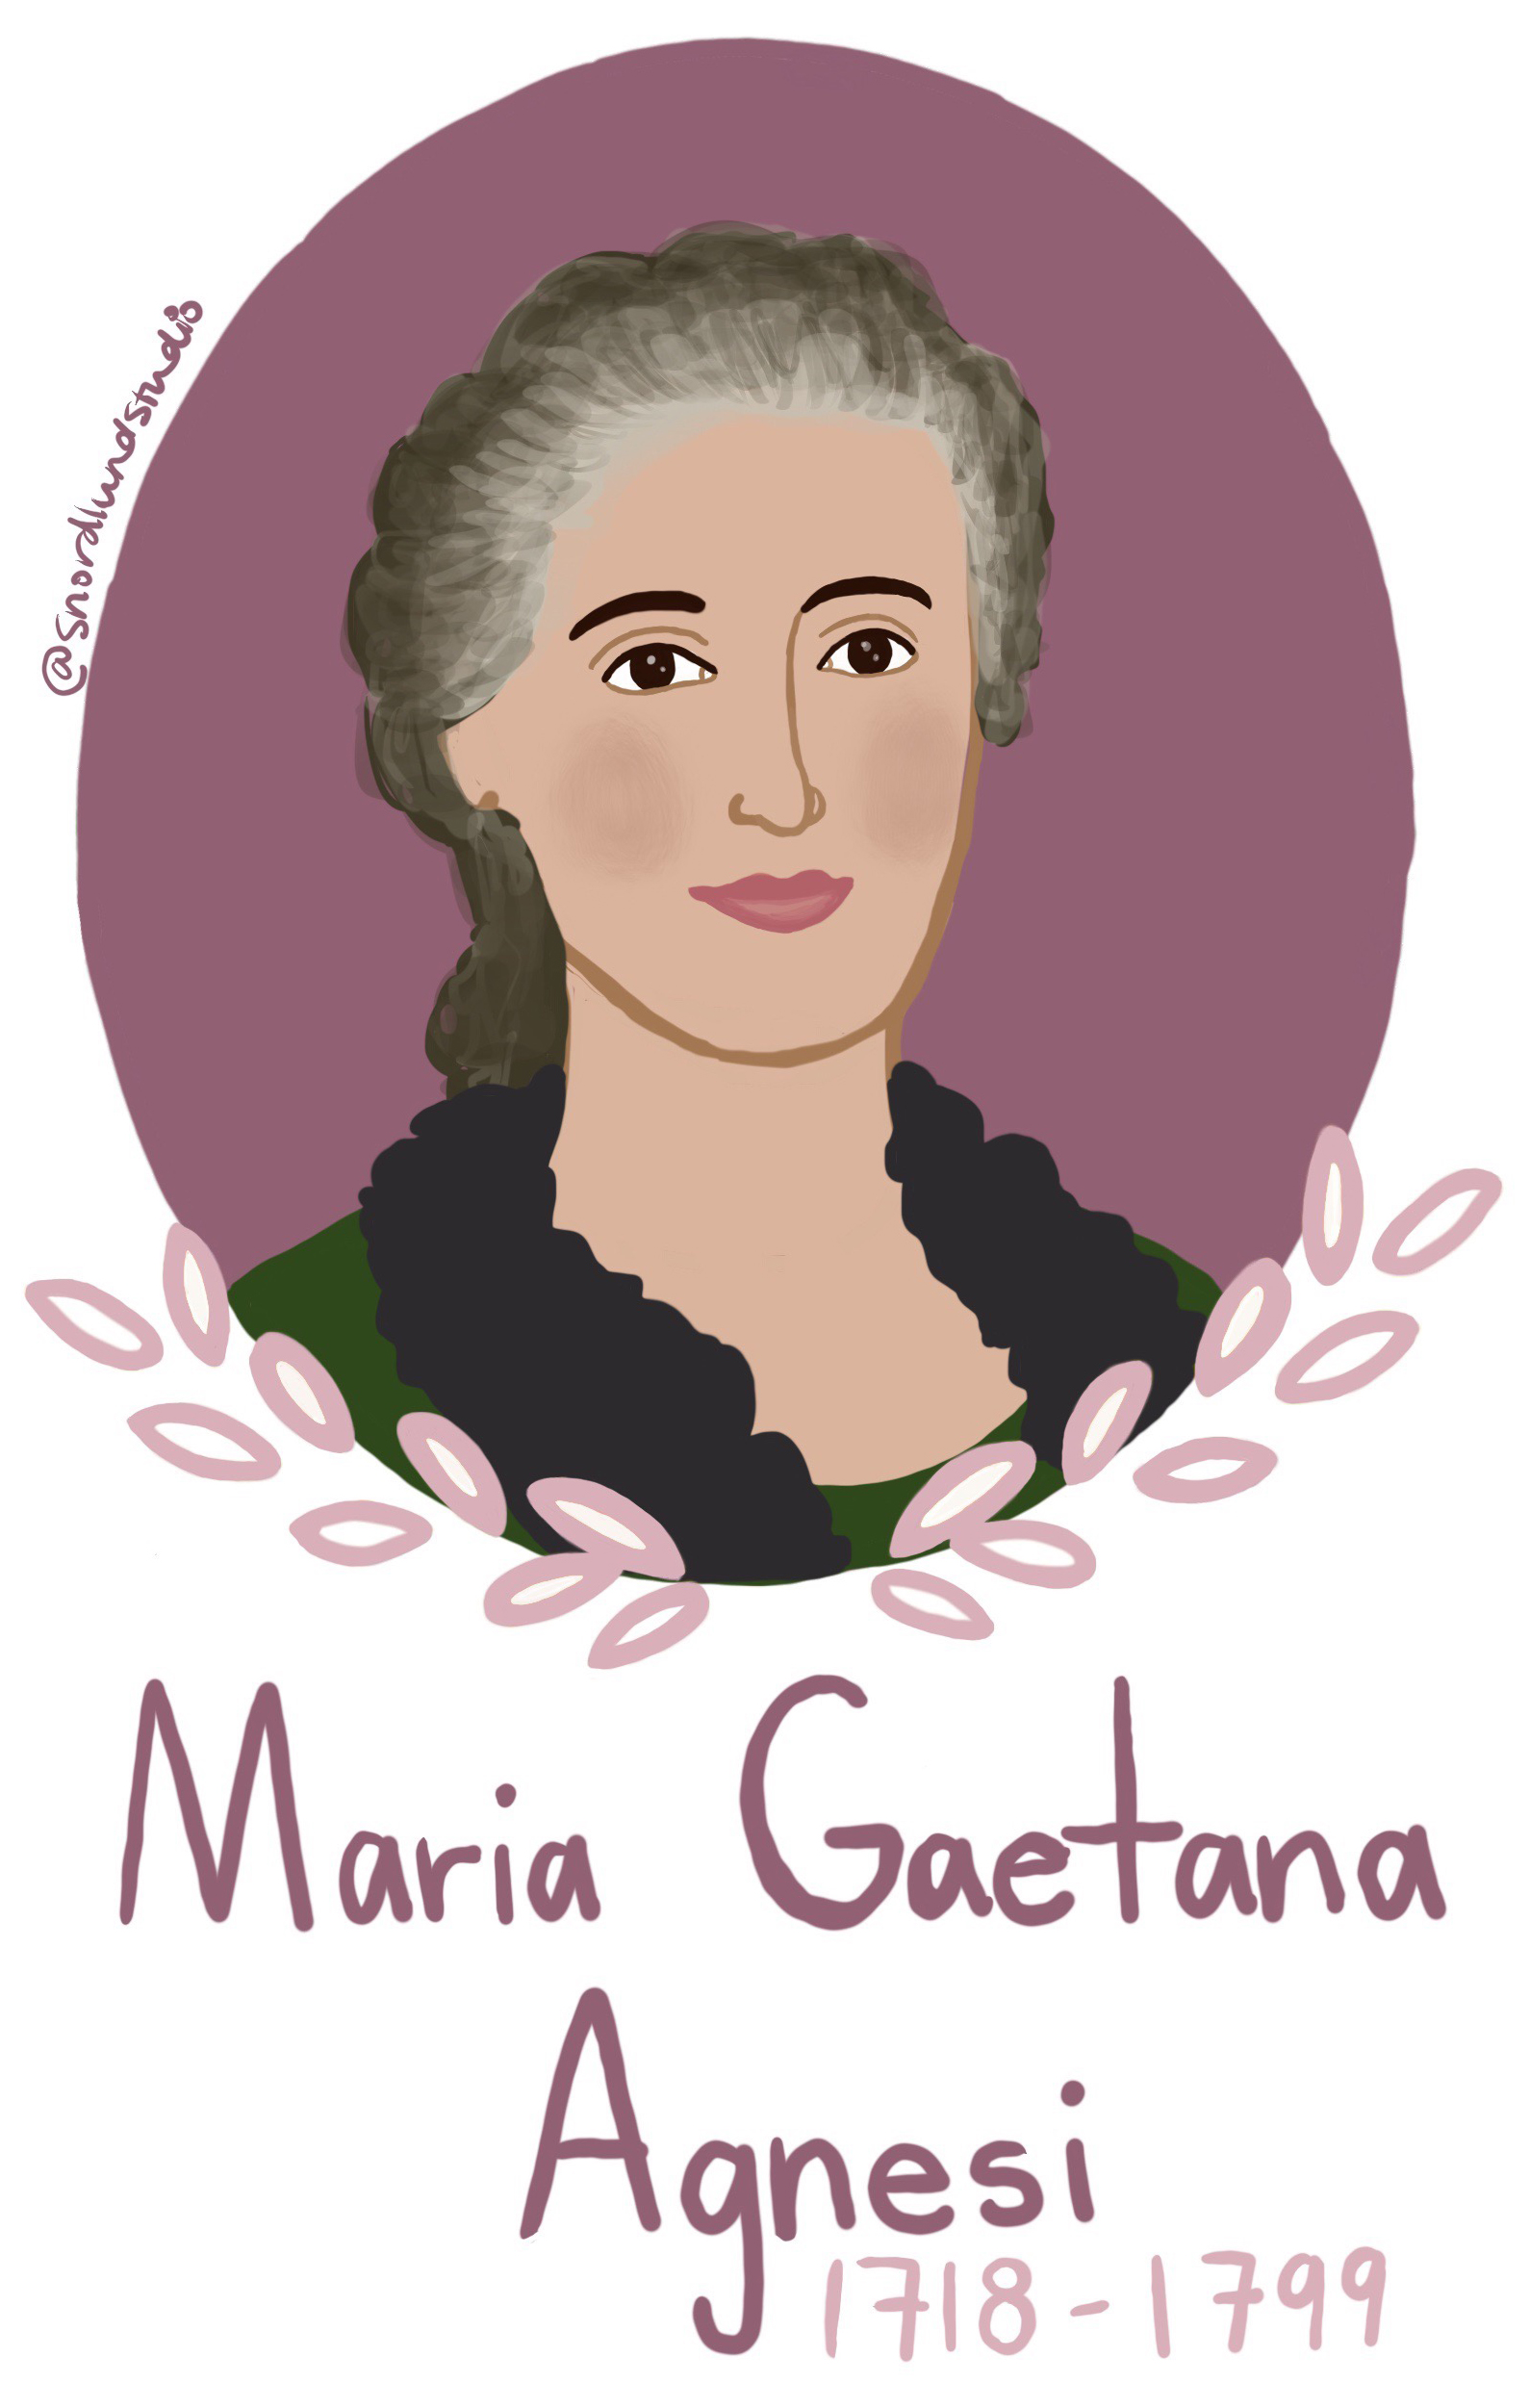 "25. Maria Gaetana Agnesi - Maria Gaetana Agnesi was a mathematician, educator, and linguist. Agnesi spoke seven languages by the time she was 11, and she taught all of her 20 younger siblings. Agnesi is considered the first woman to receive a reputation in mathematics. She wrote a mathematics handbook, developed a mathematic concept now called ""Witch of Agnesi"", and became the first female mathematics professor at a university. Agnesi was a strong advocate for women's right to be educated."